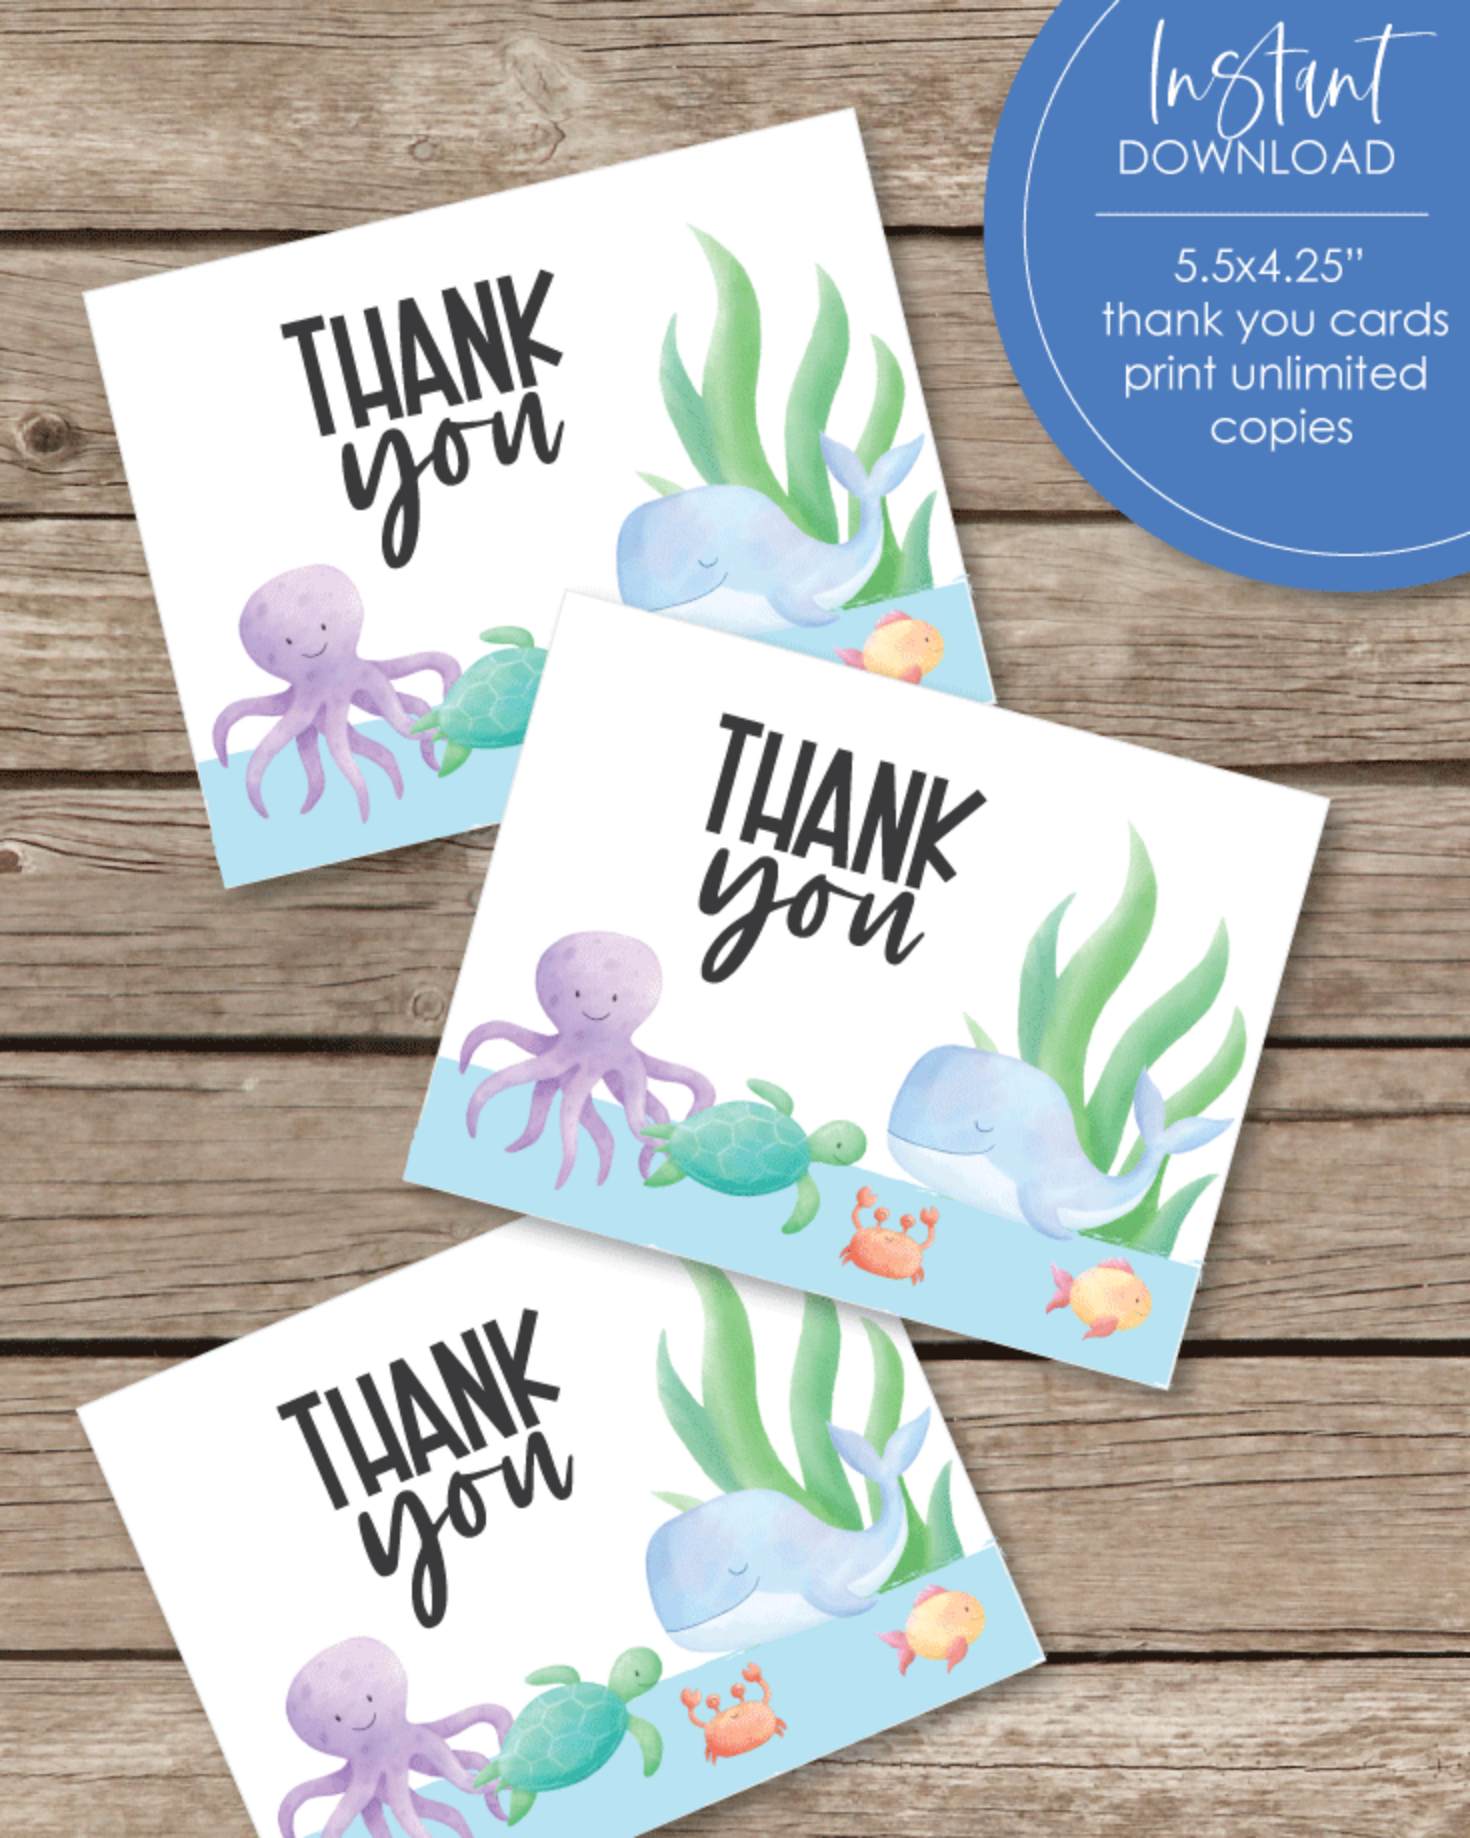 "Printable Thank You Card - Under The Sea, Sea Creature Theme - 5.5 x 4.25"" Folded"